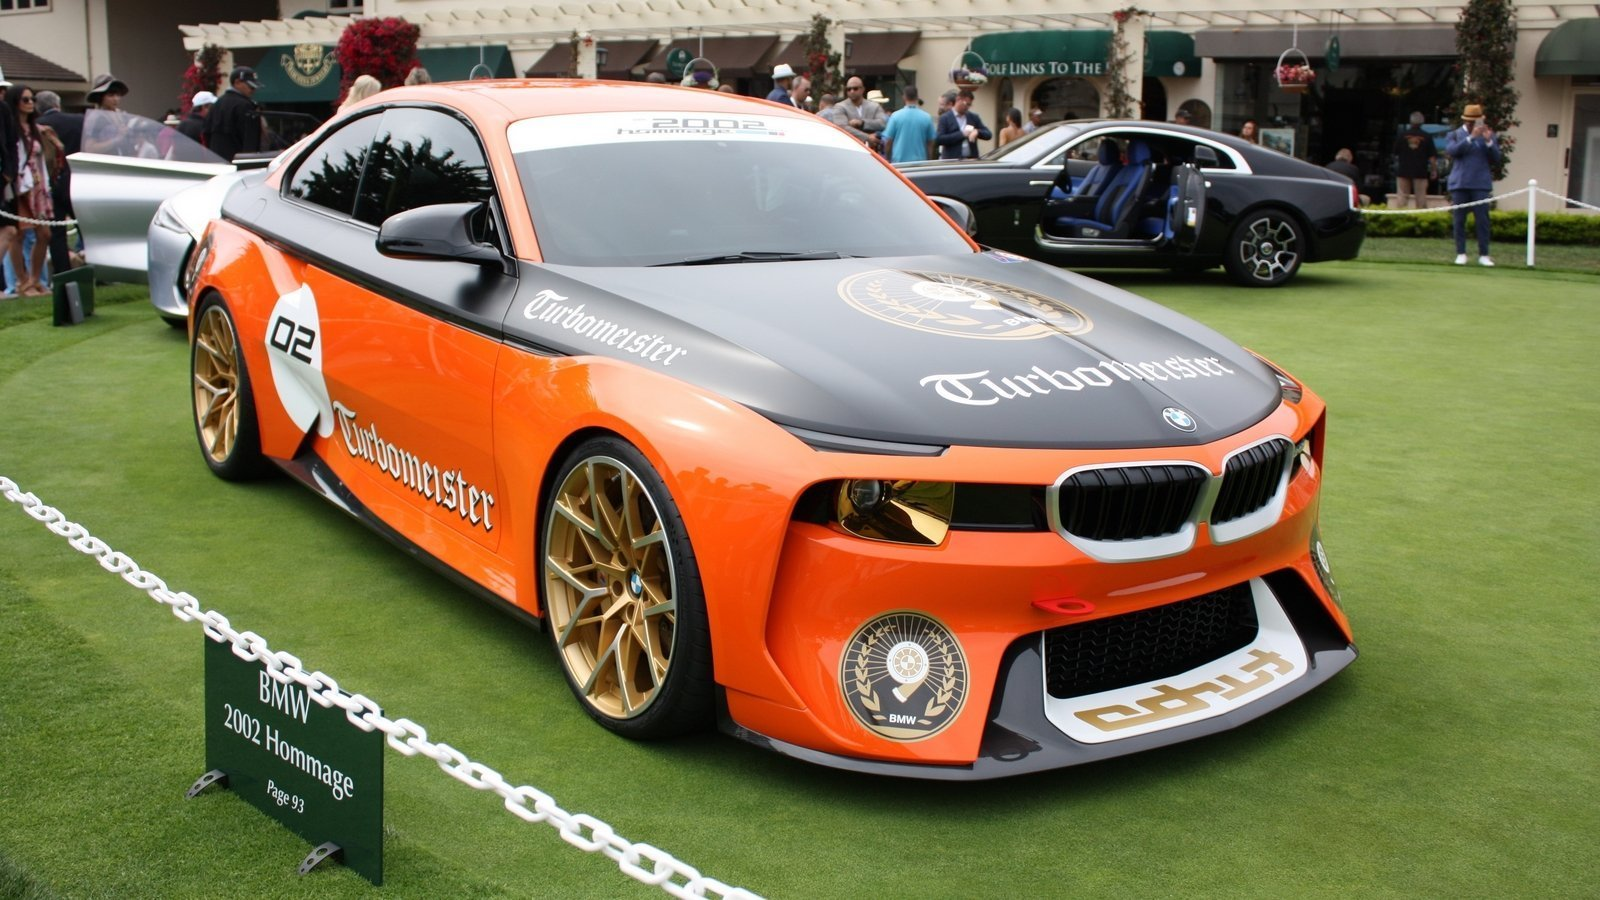 Latest 2016 Bmw 2002 Hommage Top Speed Free Download